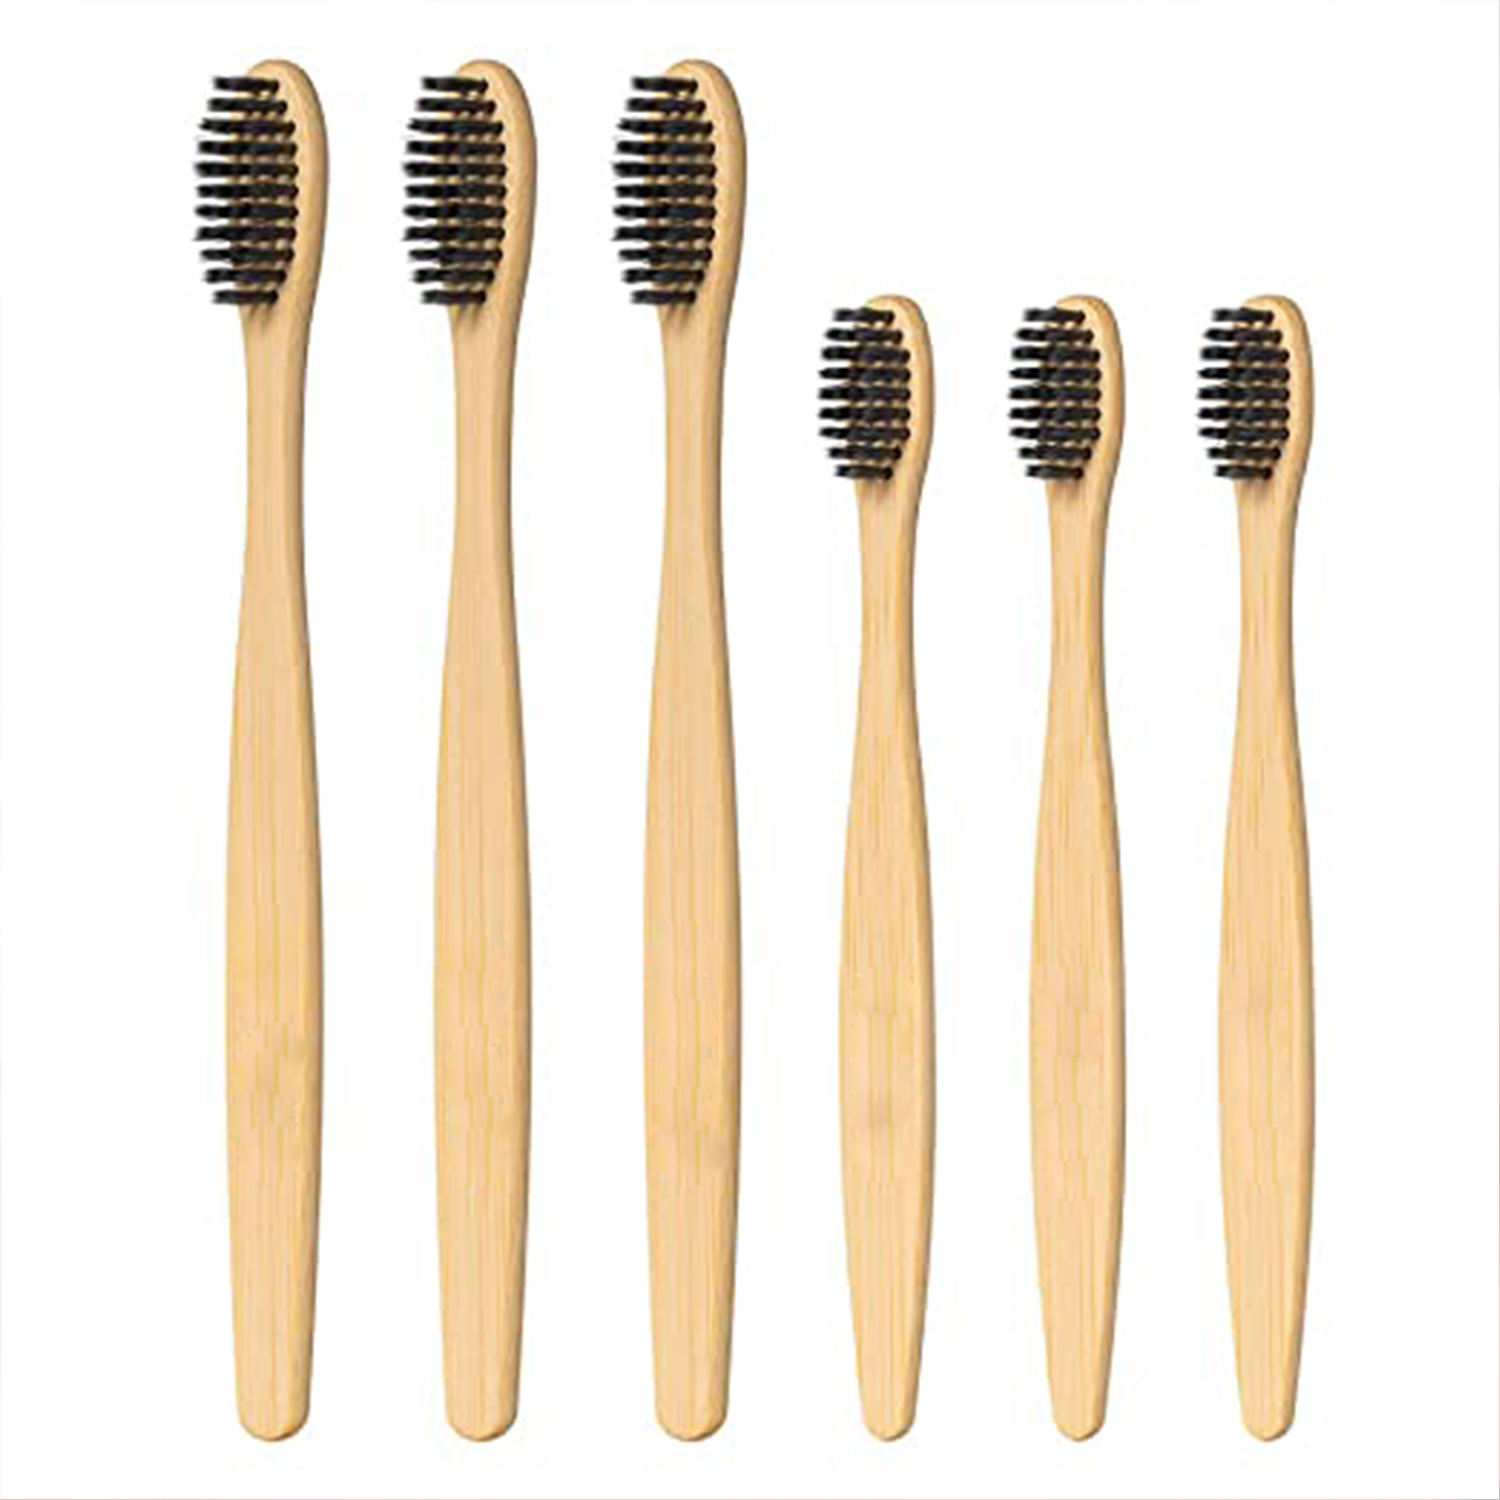 Winning OEM Natural Spazzolino Bamboo Toothbrush Bambou Soft Cleaner Eco-friendly Travel Home Teeth Brush Box Cepillo De Bambu